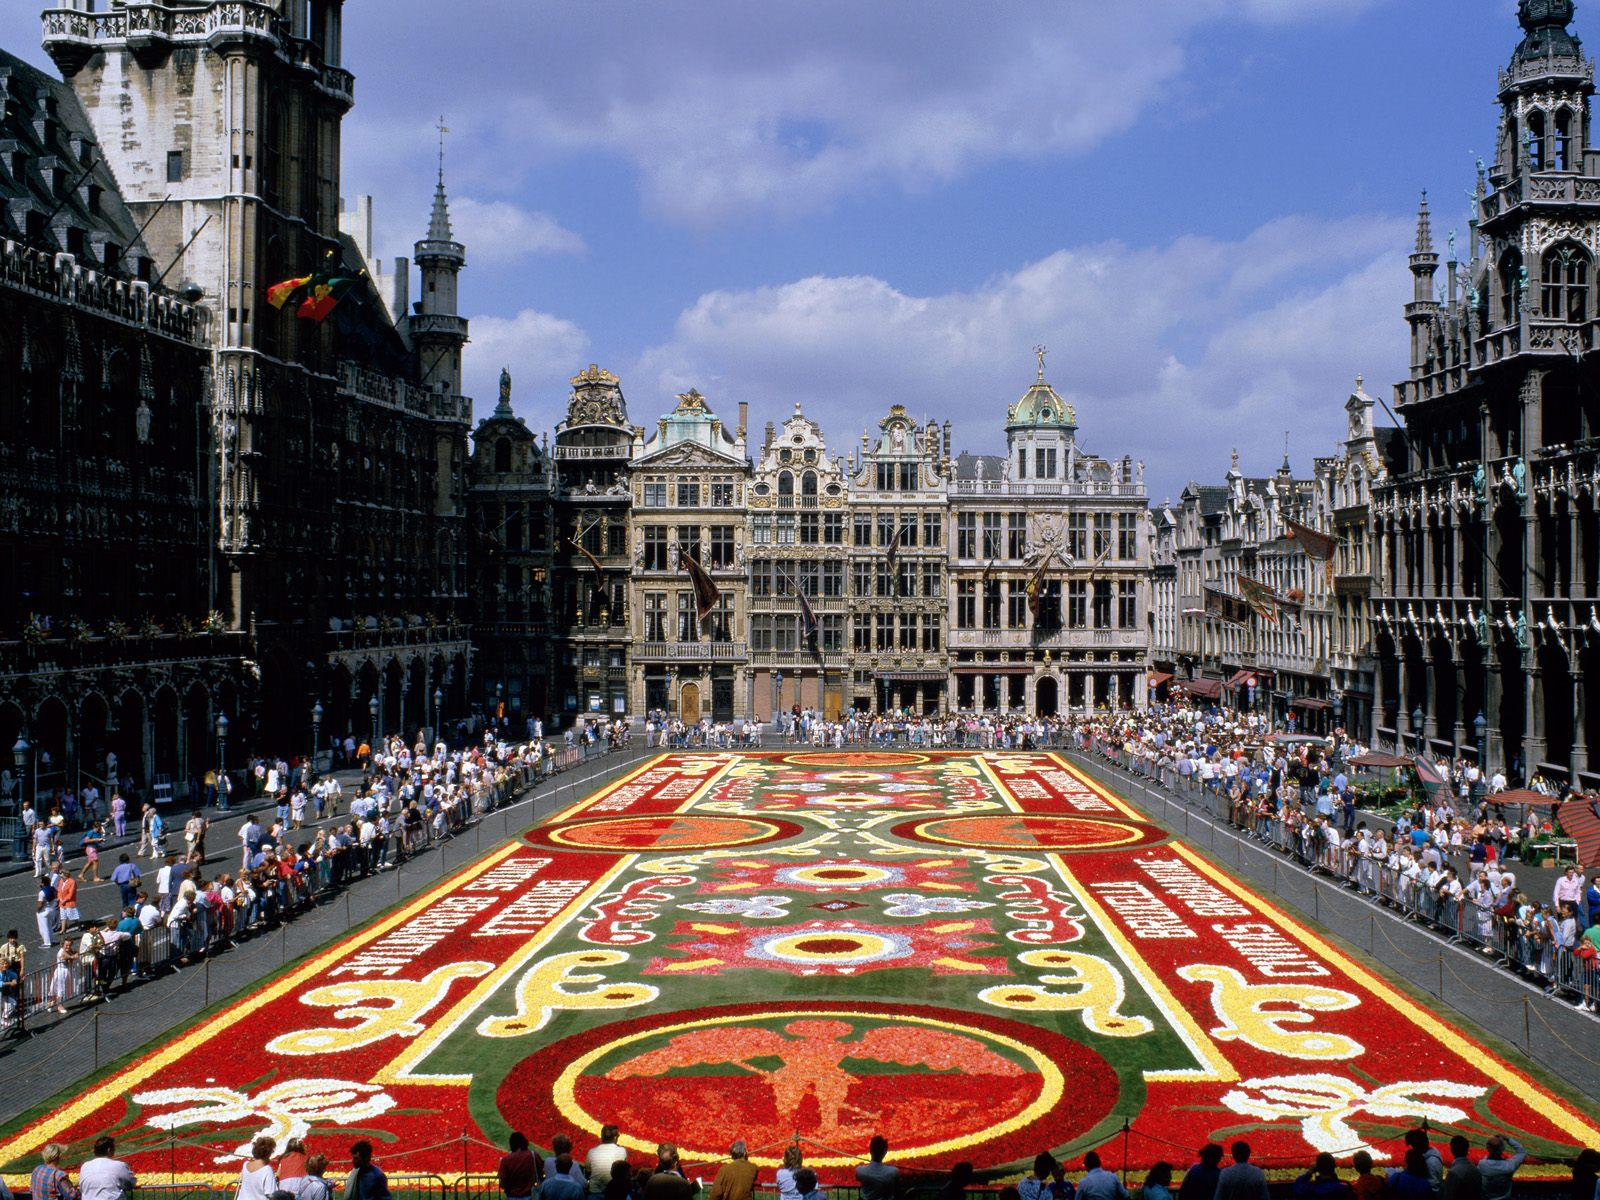 Grand place brussels belgium 1600x1200 picture grand place brussels belgium 1600x1200 photo - Office de tourisme bruxelles grand place ...